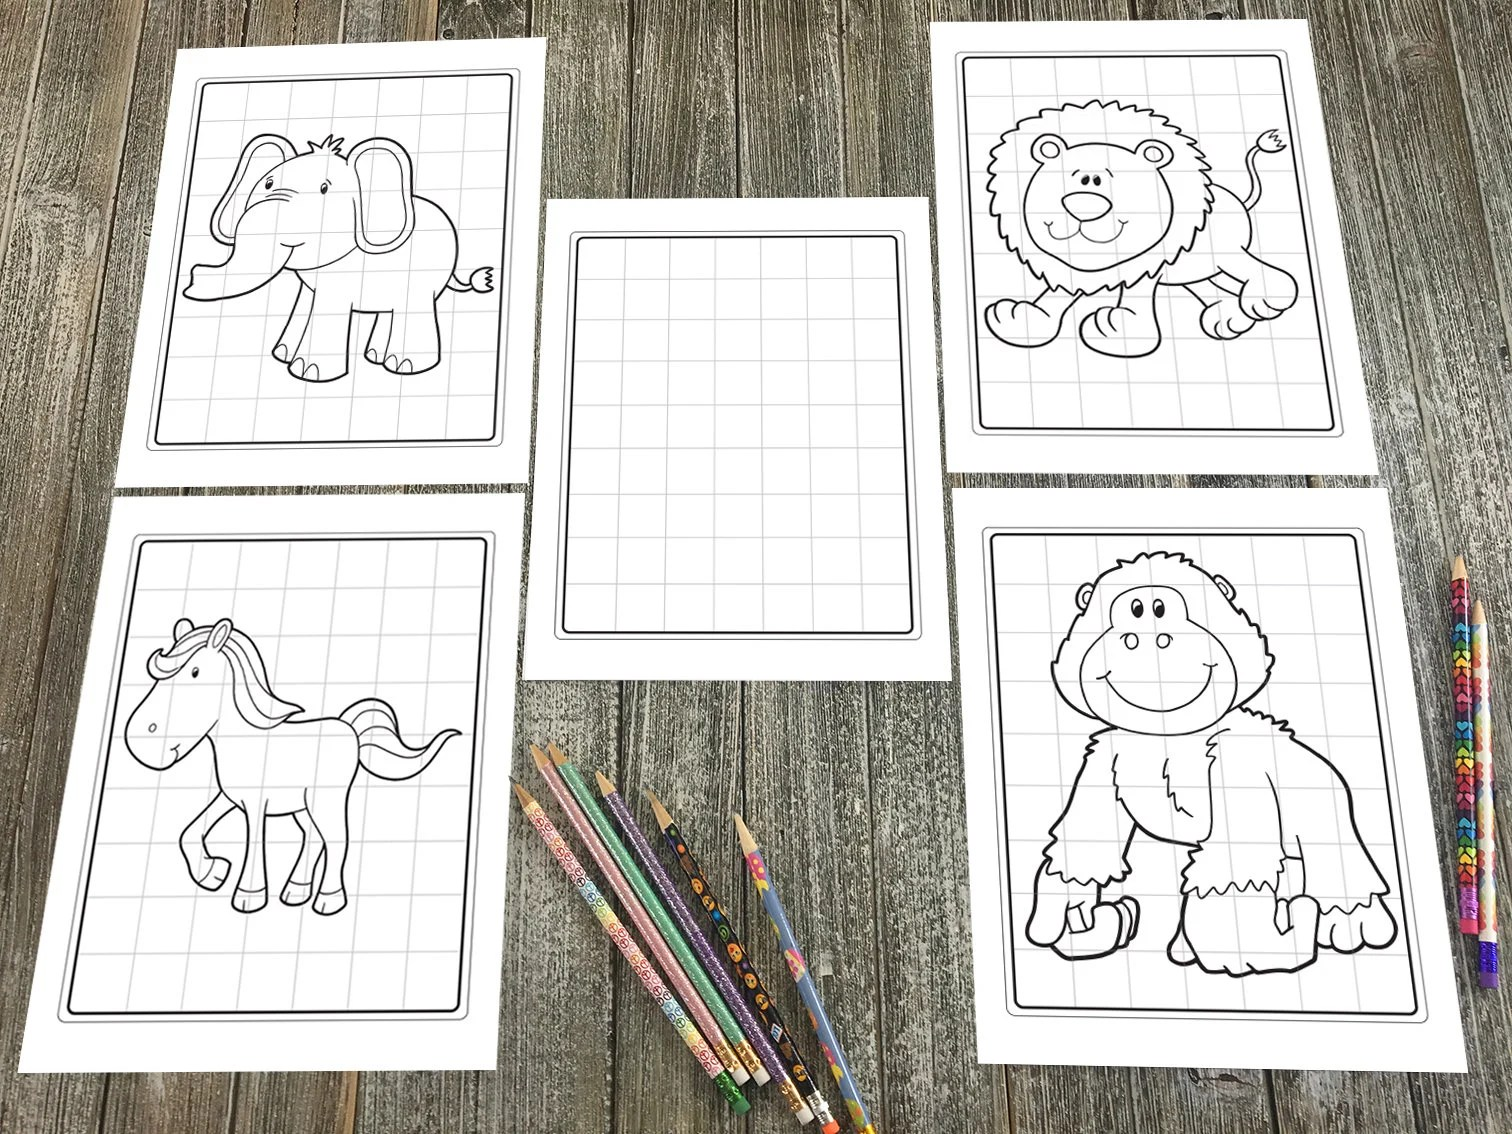 Grid Drawing Cute Animal Worksheet Pages Downloadable